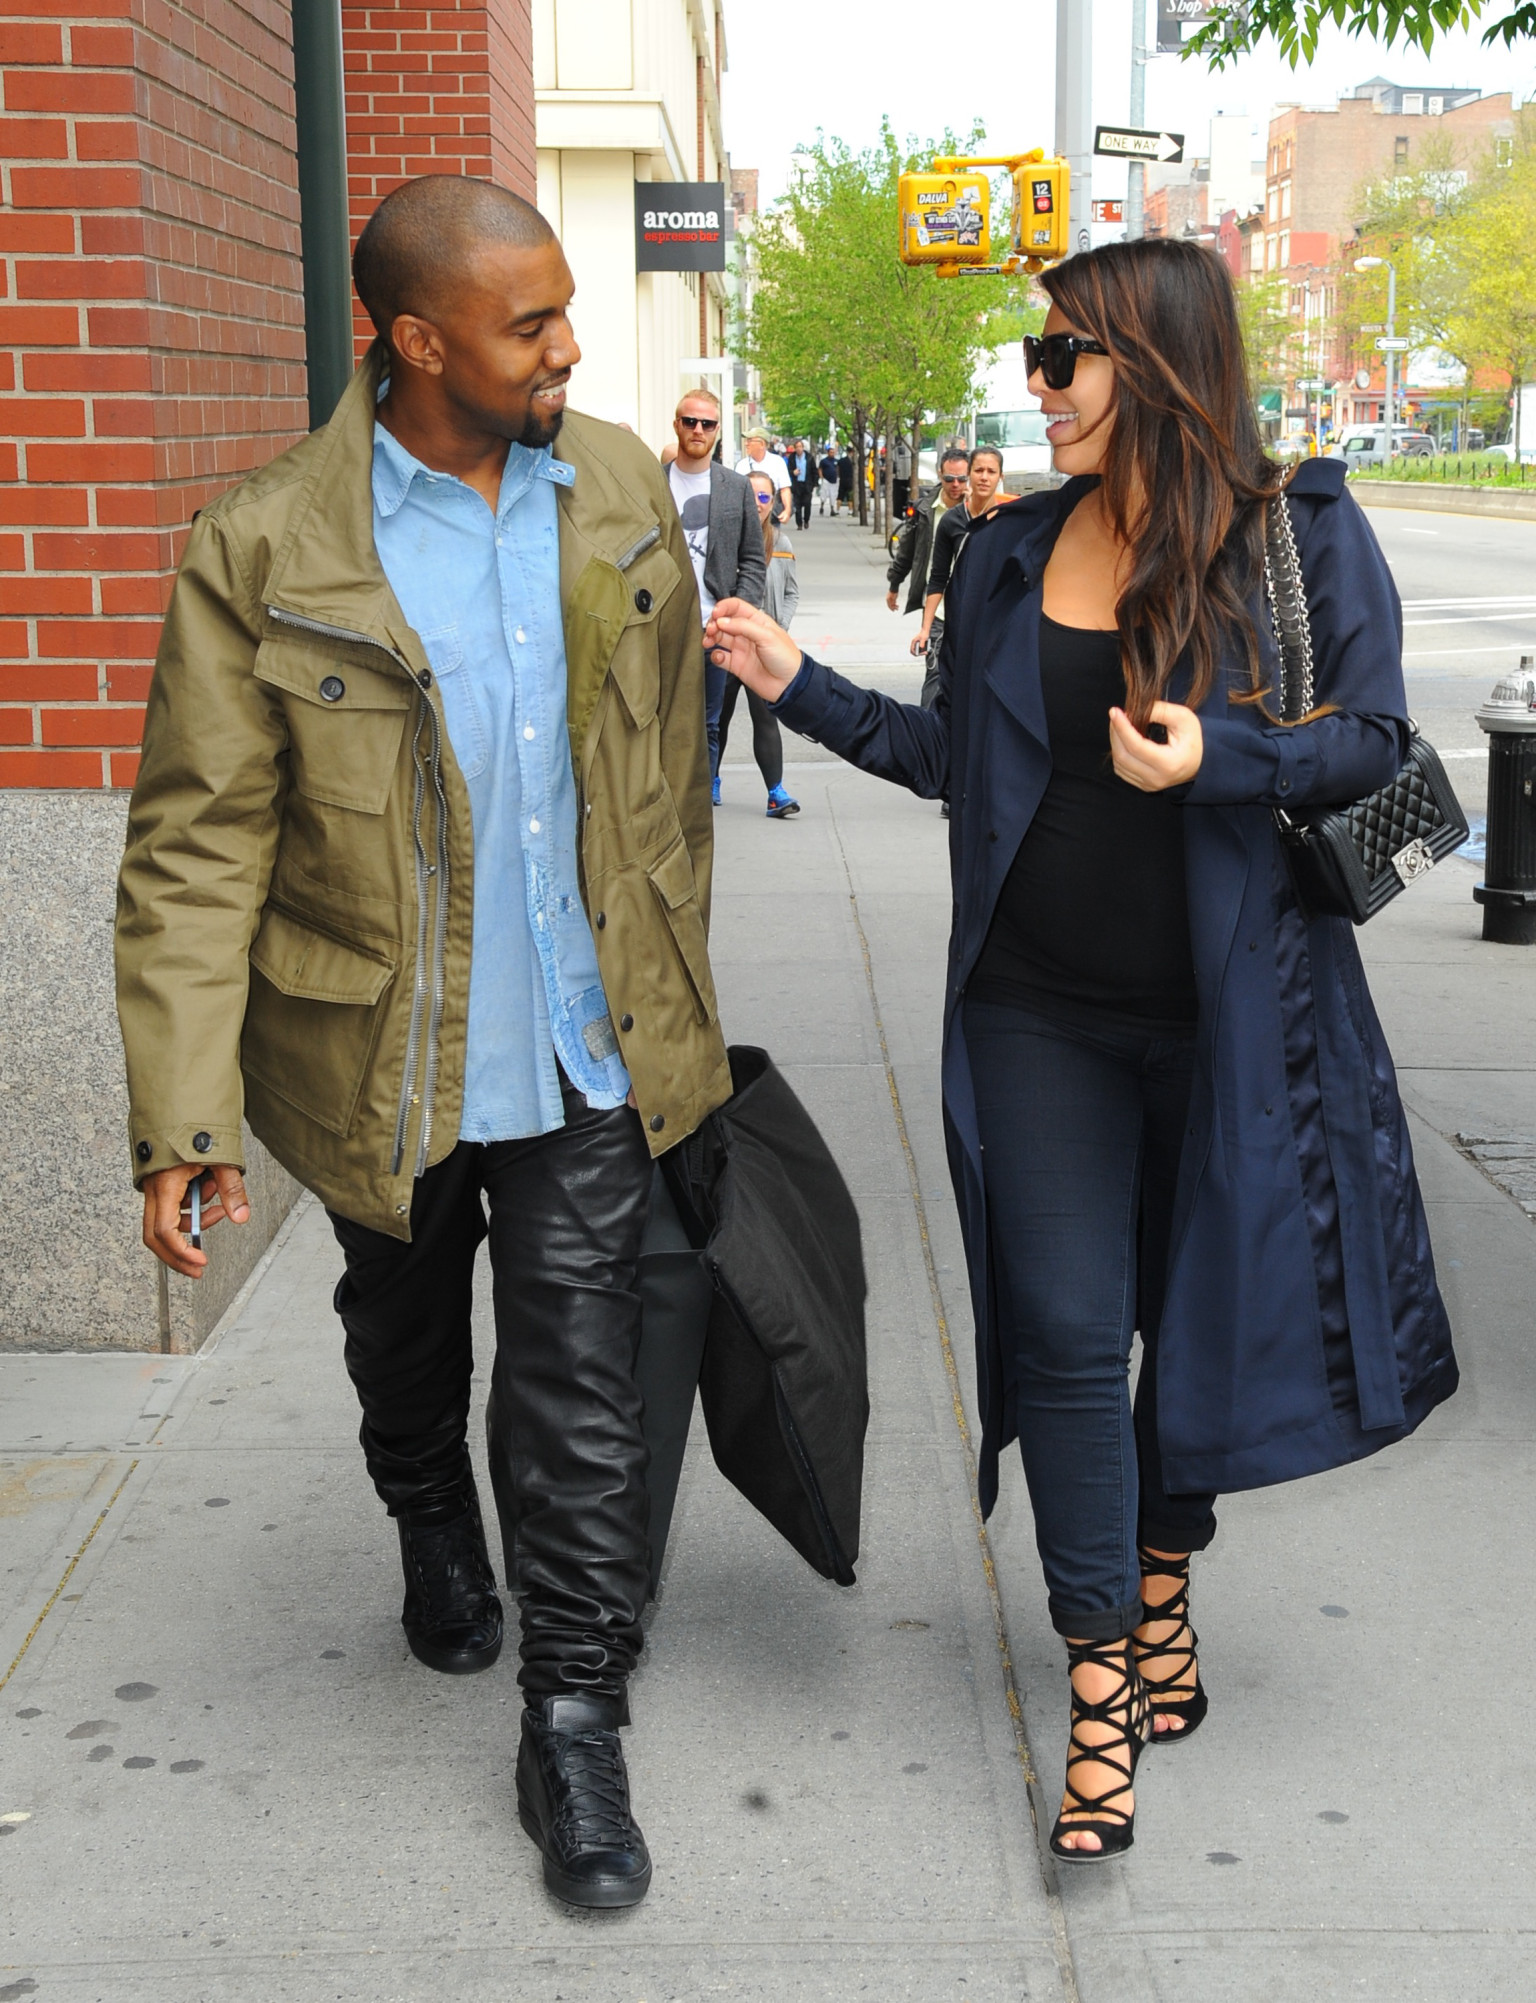 It's Been A Big Week For Kimye